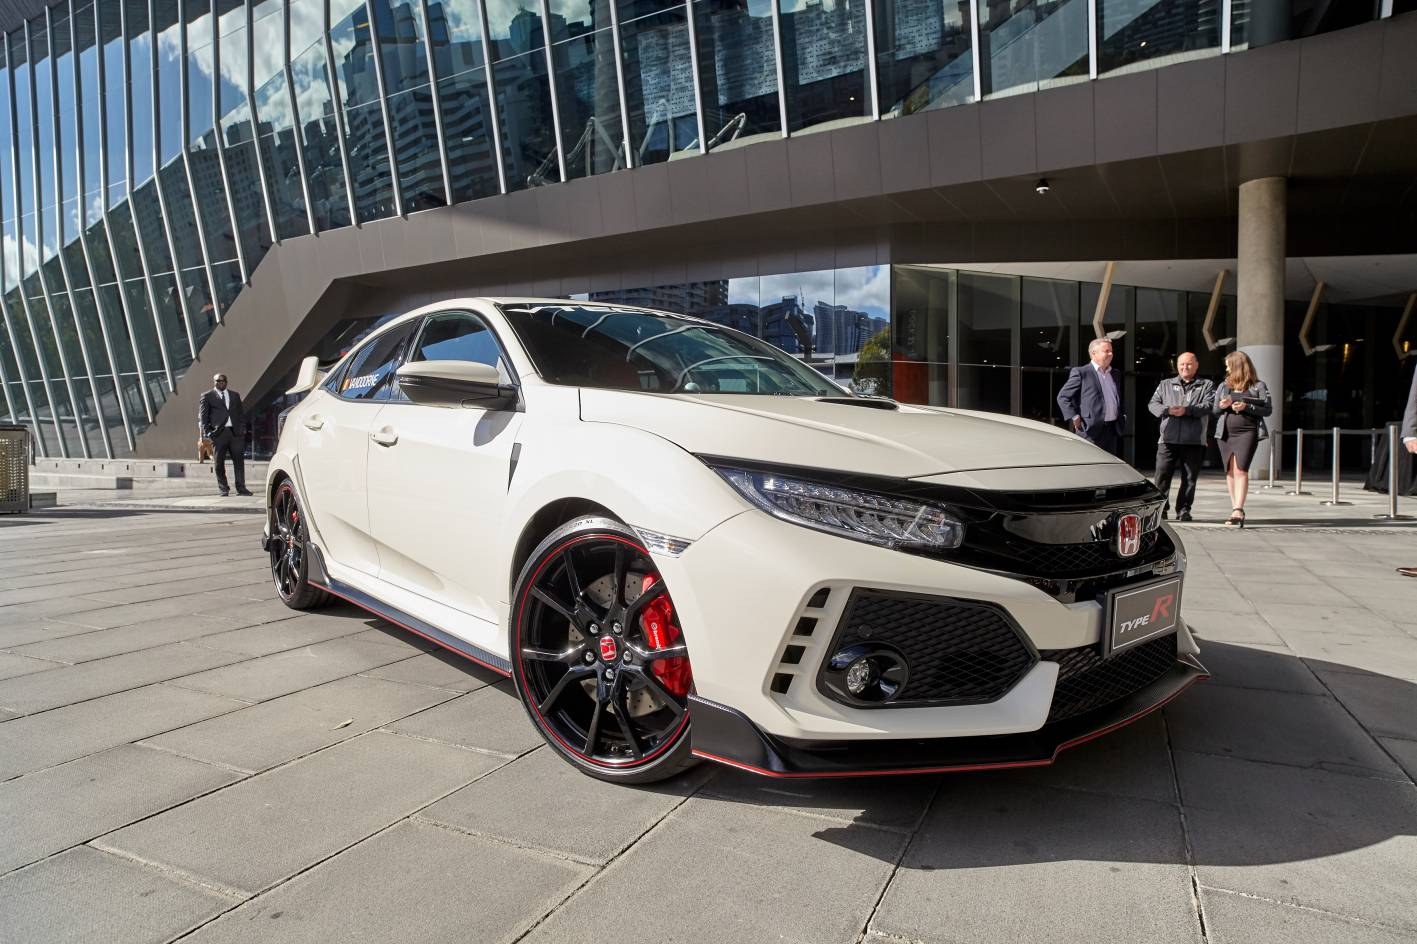 honda civic type r makes early arrival ahead of australian grand prix. Black Bedroom Furniture Sets. Home Design Ideas